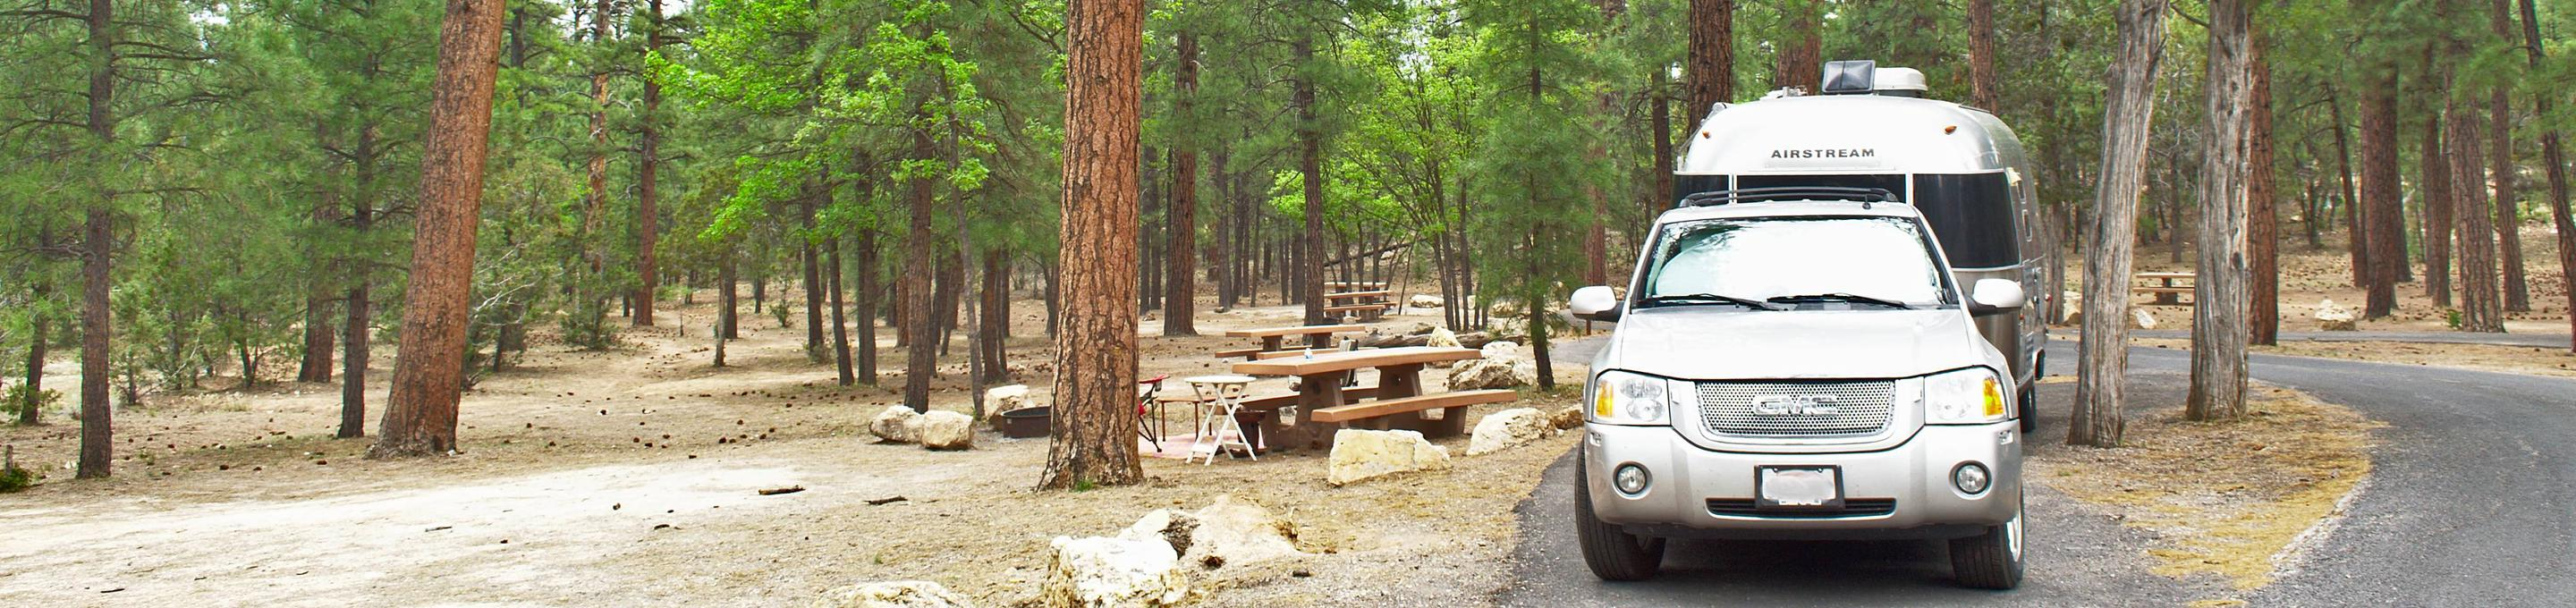 A car and trailer in the parking spot next to a picnic table and fire pit, Mather CampgroundA car and trailer in the parking spot next to a picnic table and fire pit, Aspen Loop 6 Mather Campground